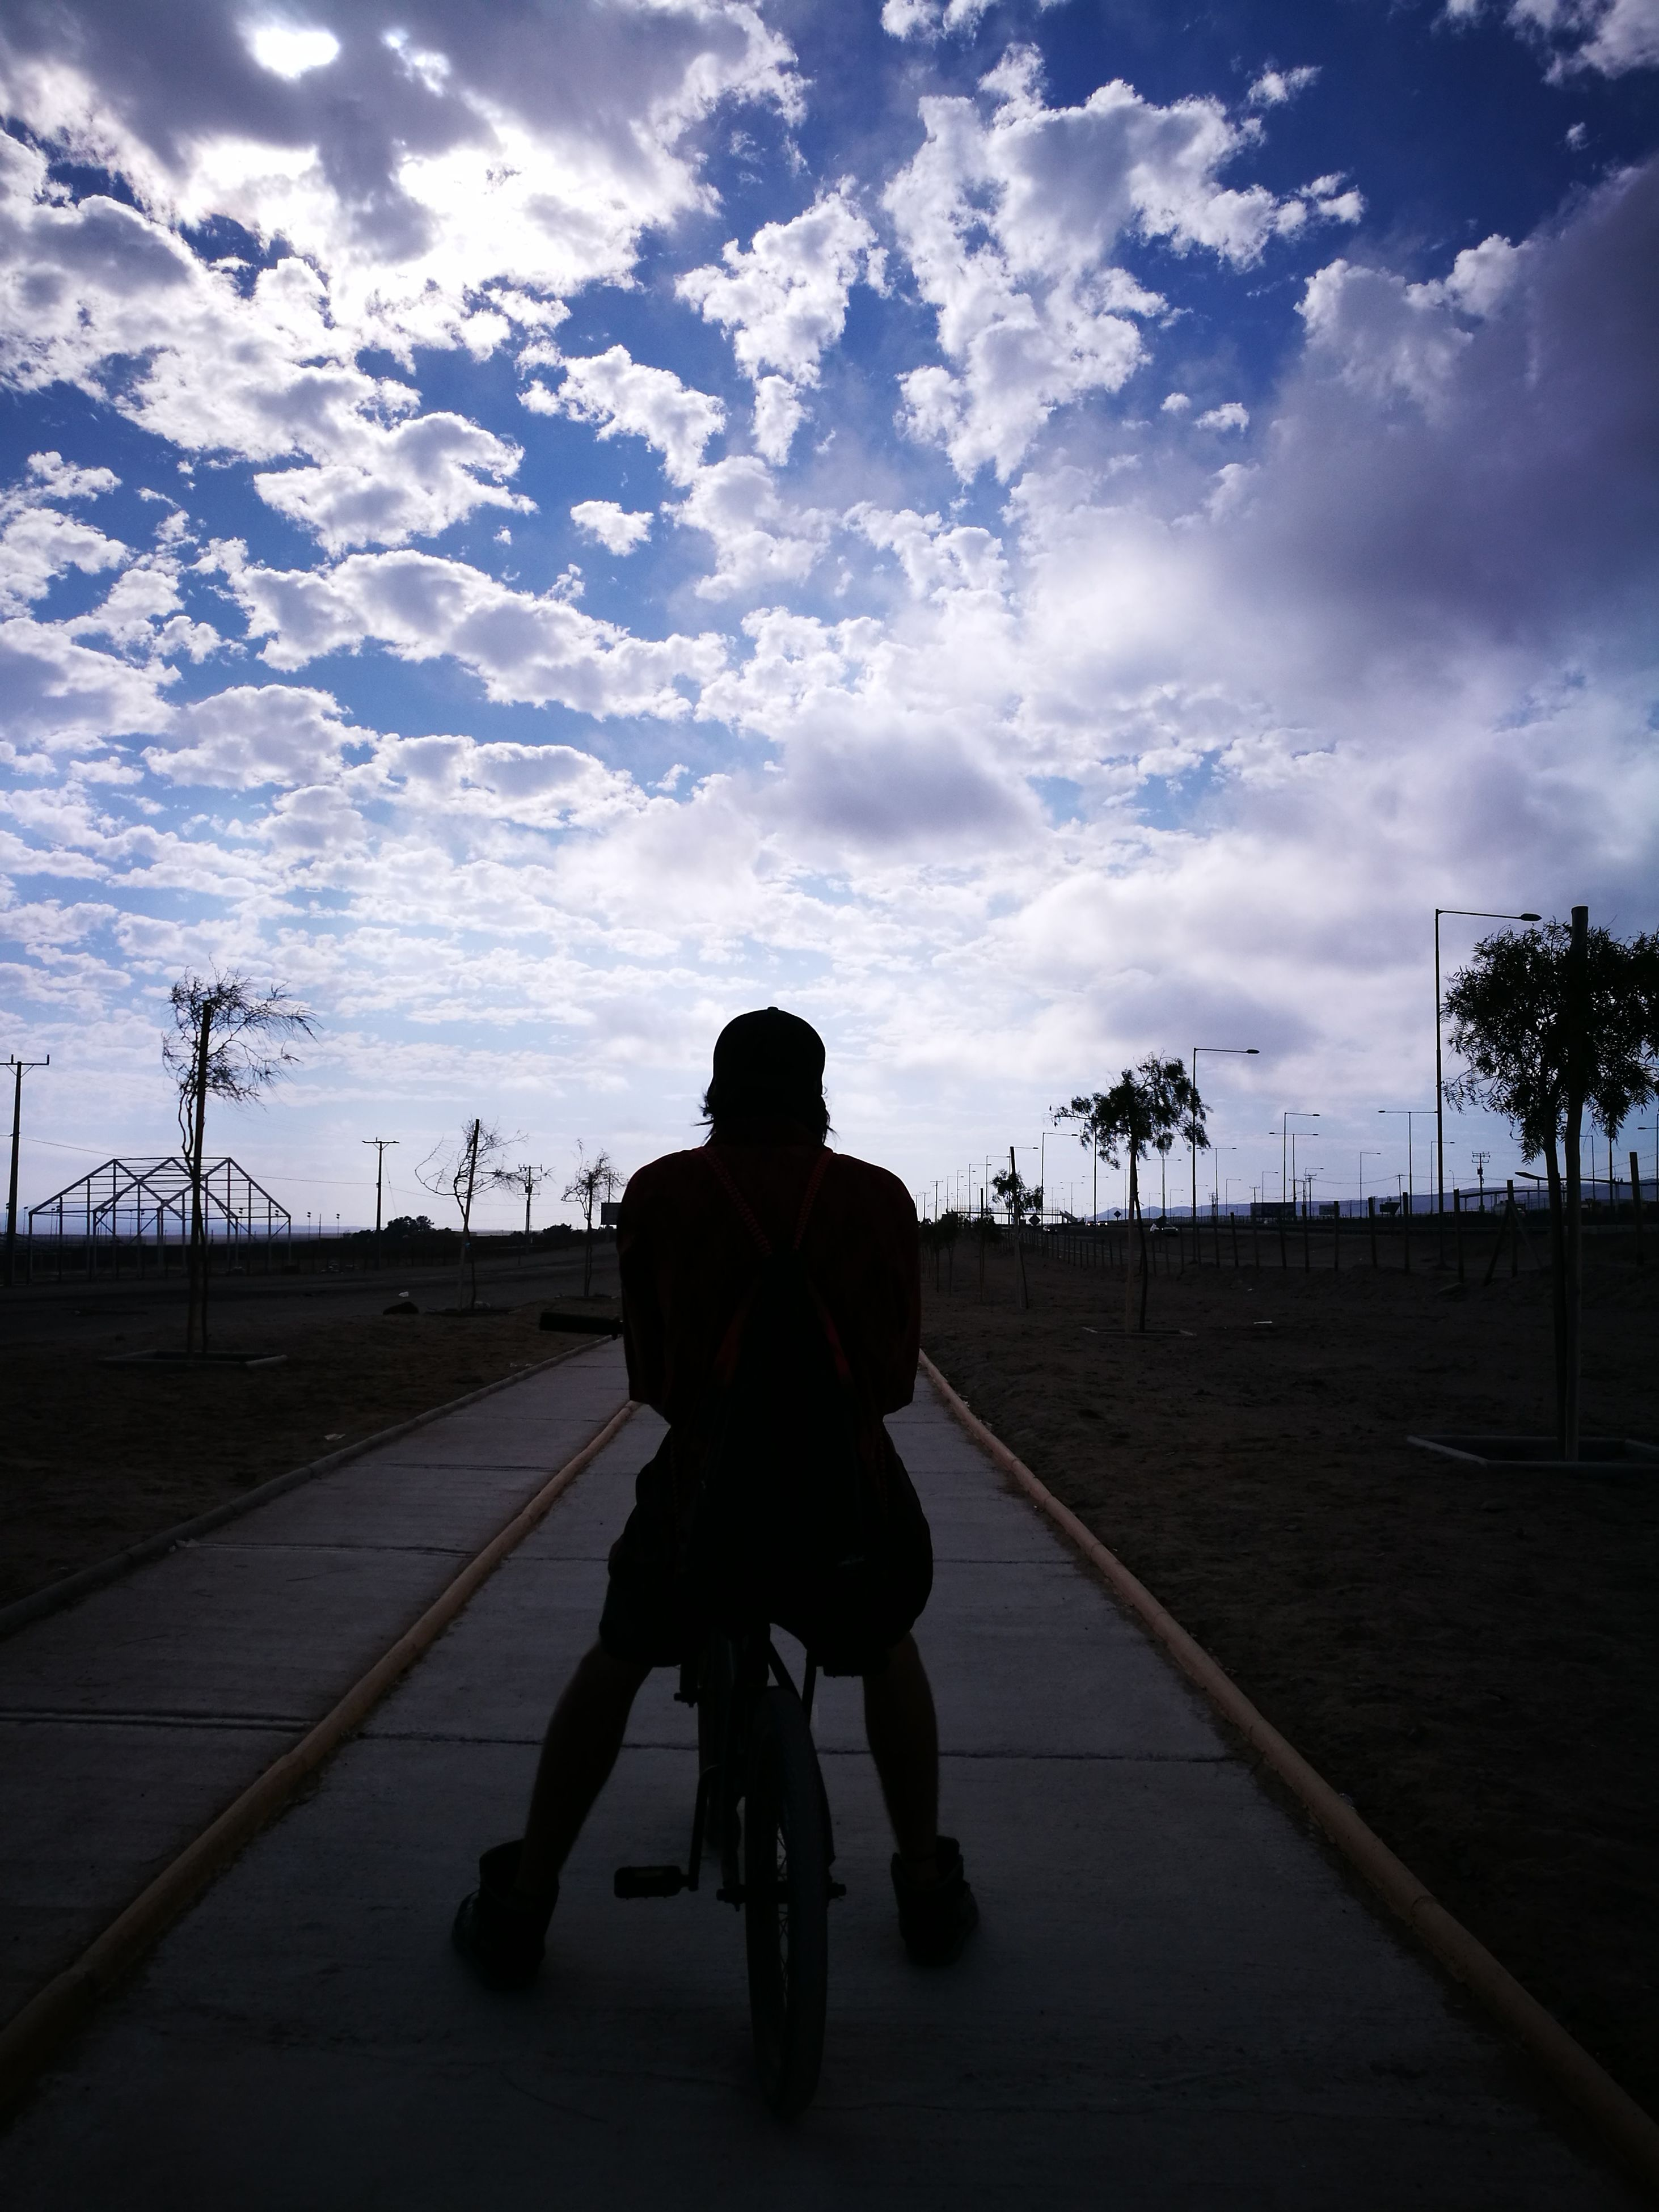 bicycle, transportation, riding, cycling, rear view, one person, cloud - sky, sky, real people, men, road, mode of transport, land vehicle, full length, outdoors, lifestyles, day, bmx cycling, one man only, nature, biker, adult, people